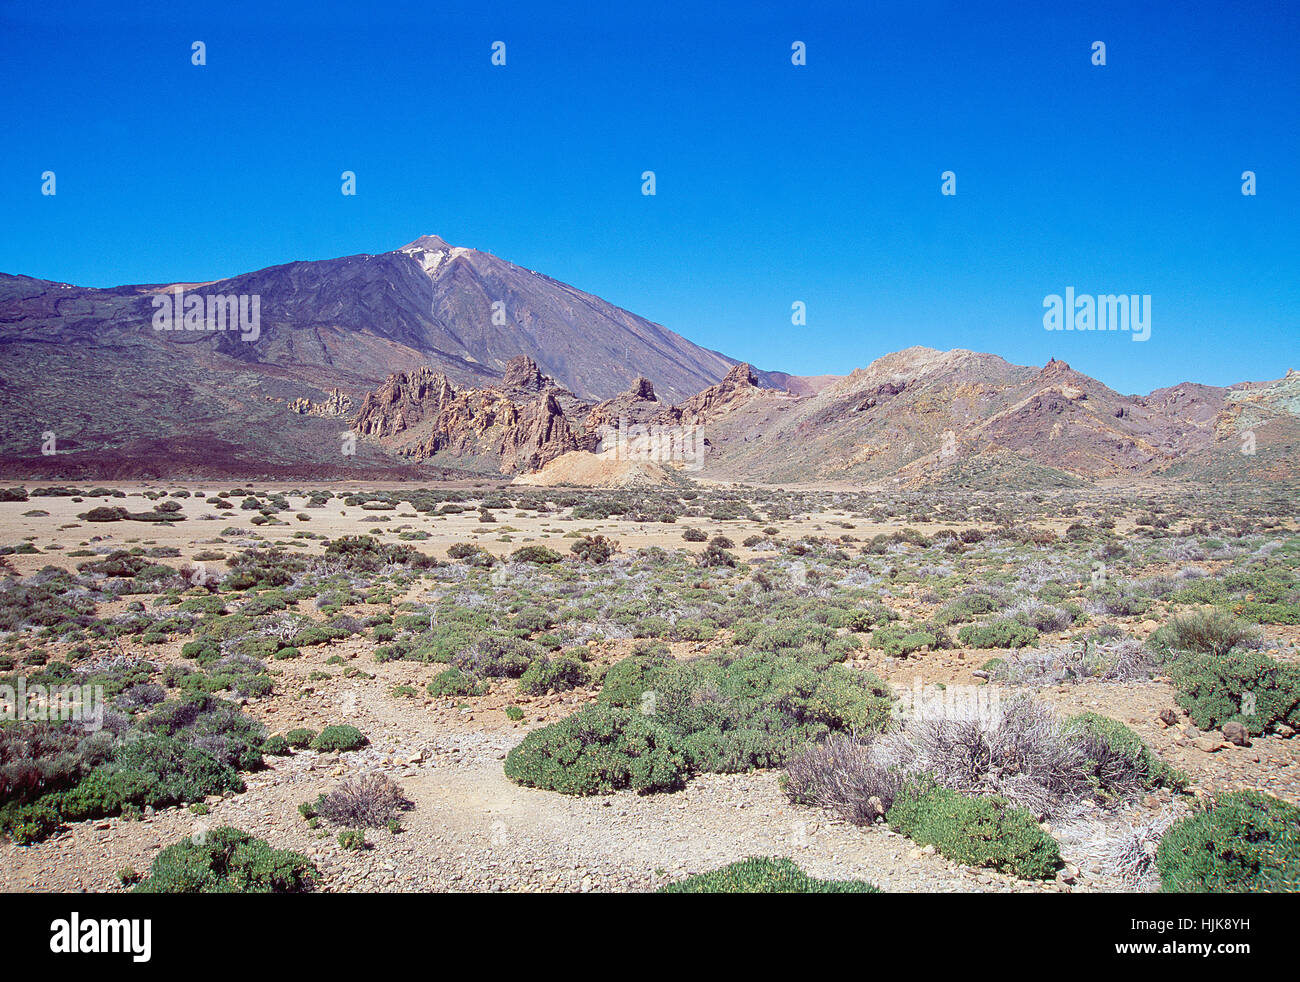 Teide peak. Teide National Park, Tenerife island, Canary Islands, Spain. Stock Photo